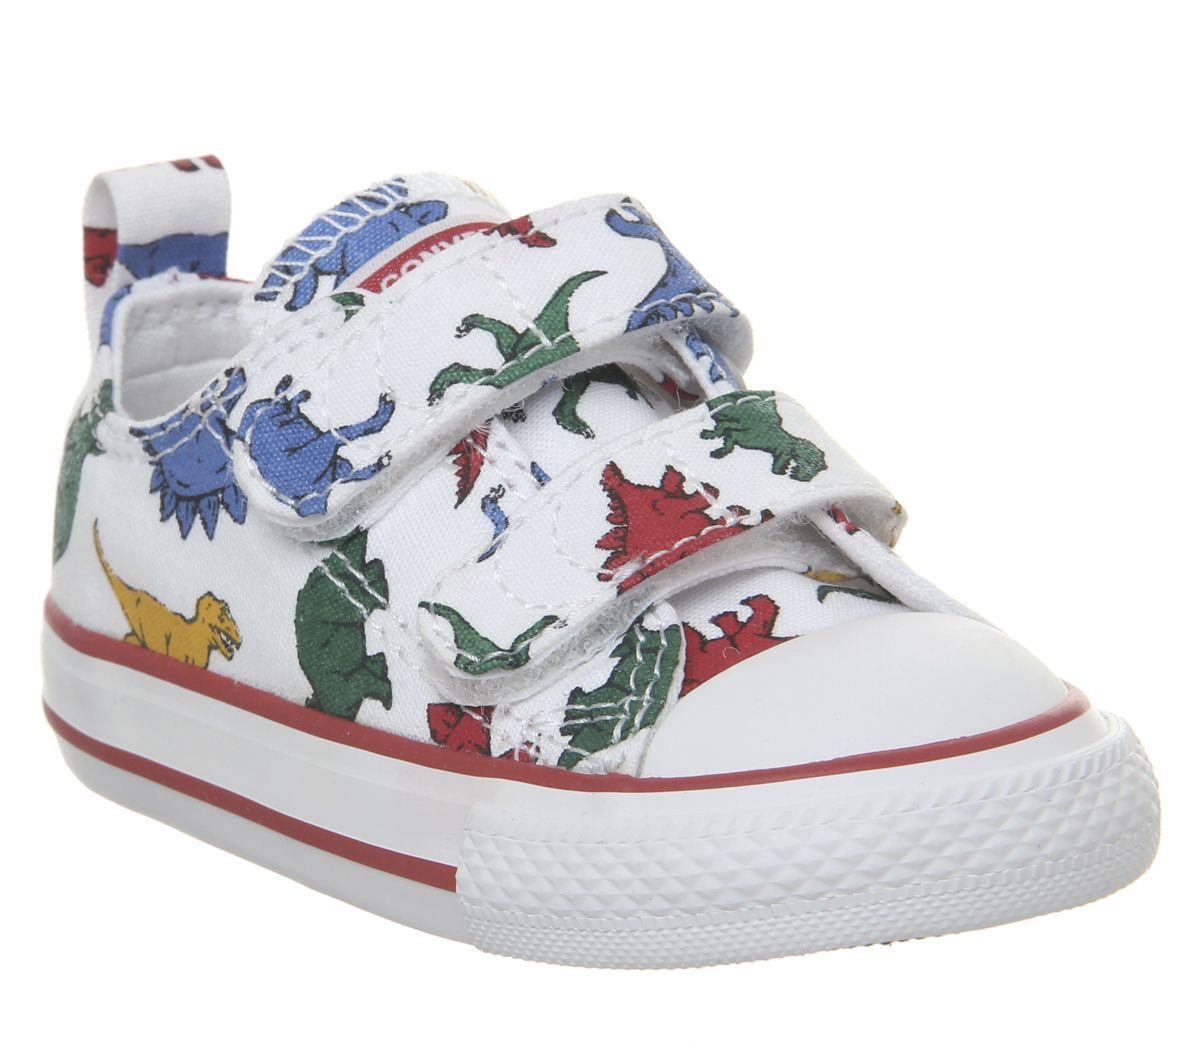 988a3d2a671a Converse All Star 2vlace Trainers White Dinosaur - Unisex